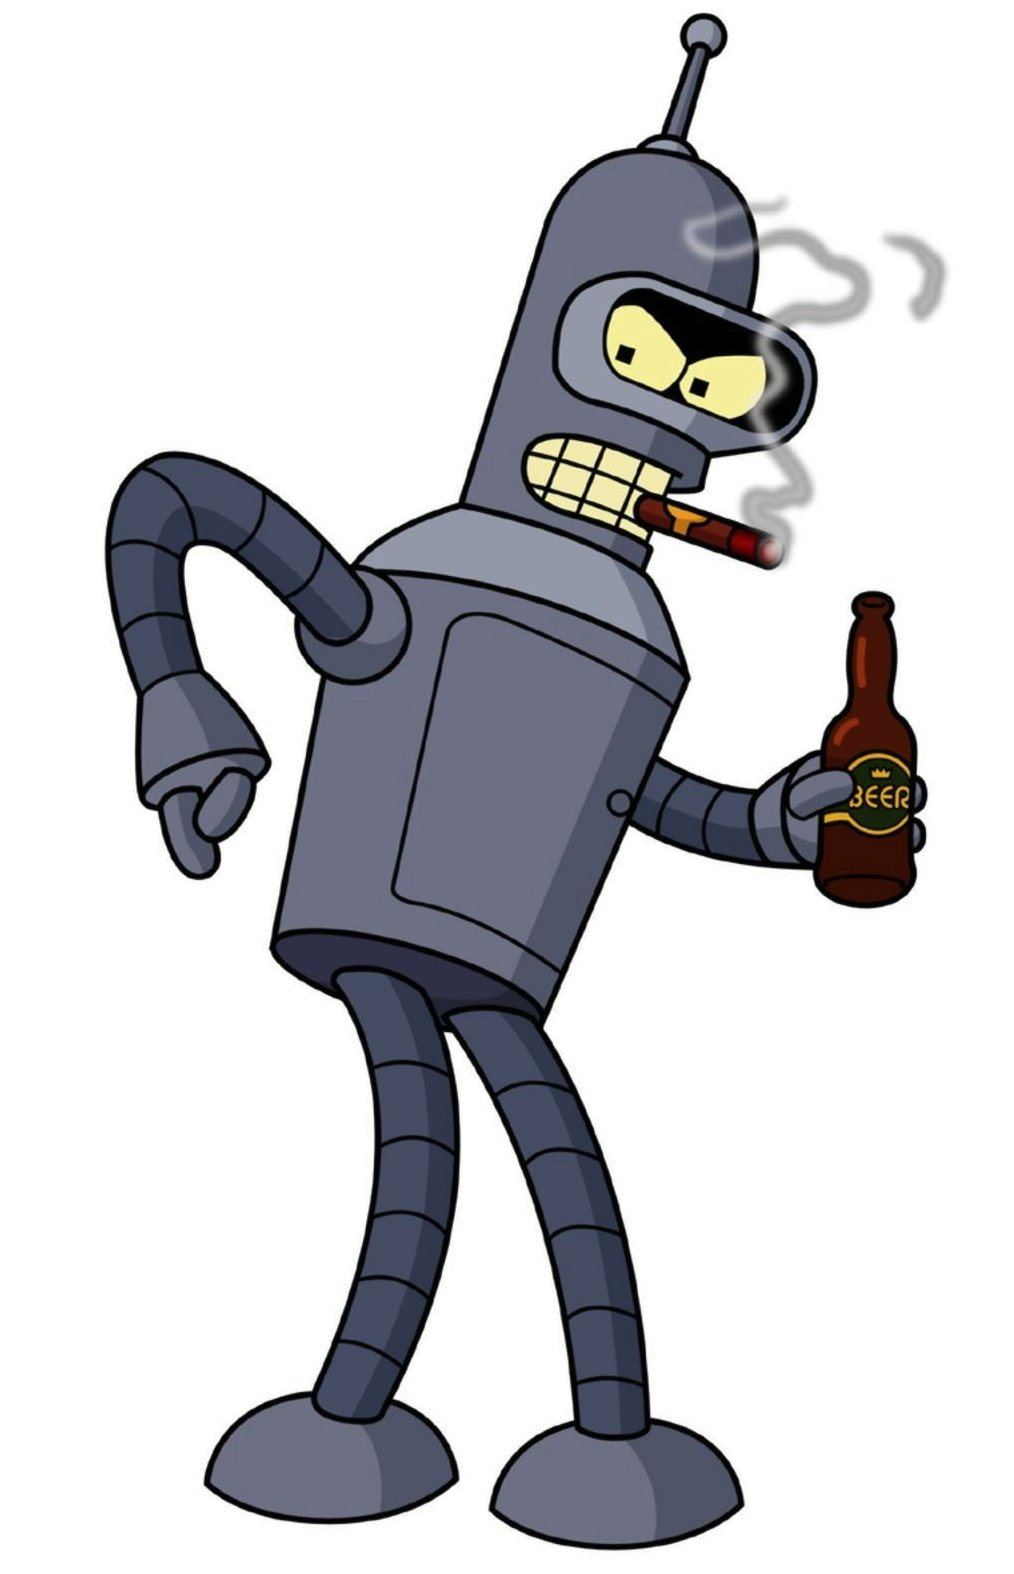 bender_futurama_kiss_my_shiny_metal_ass_